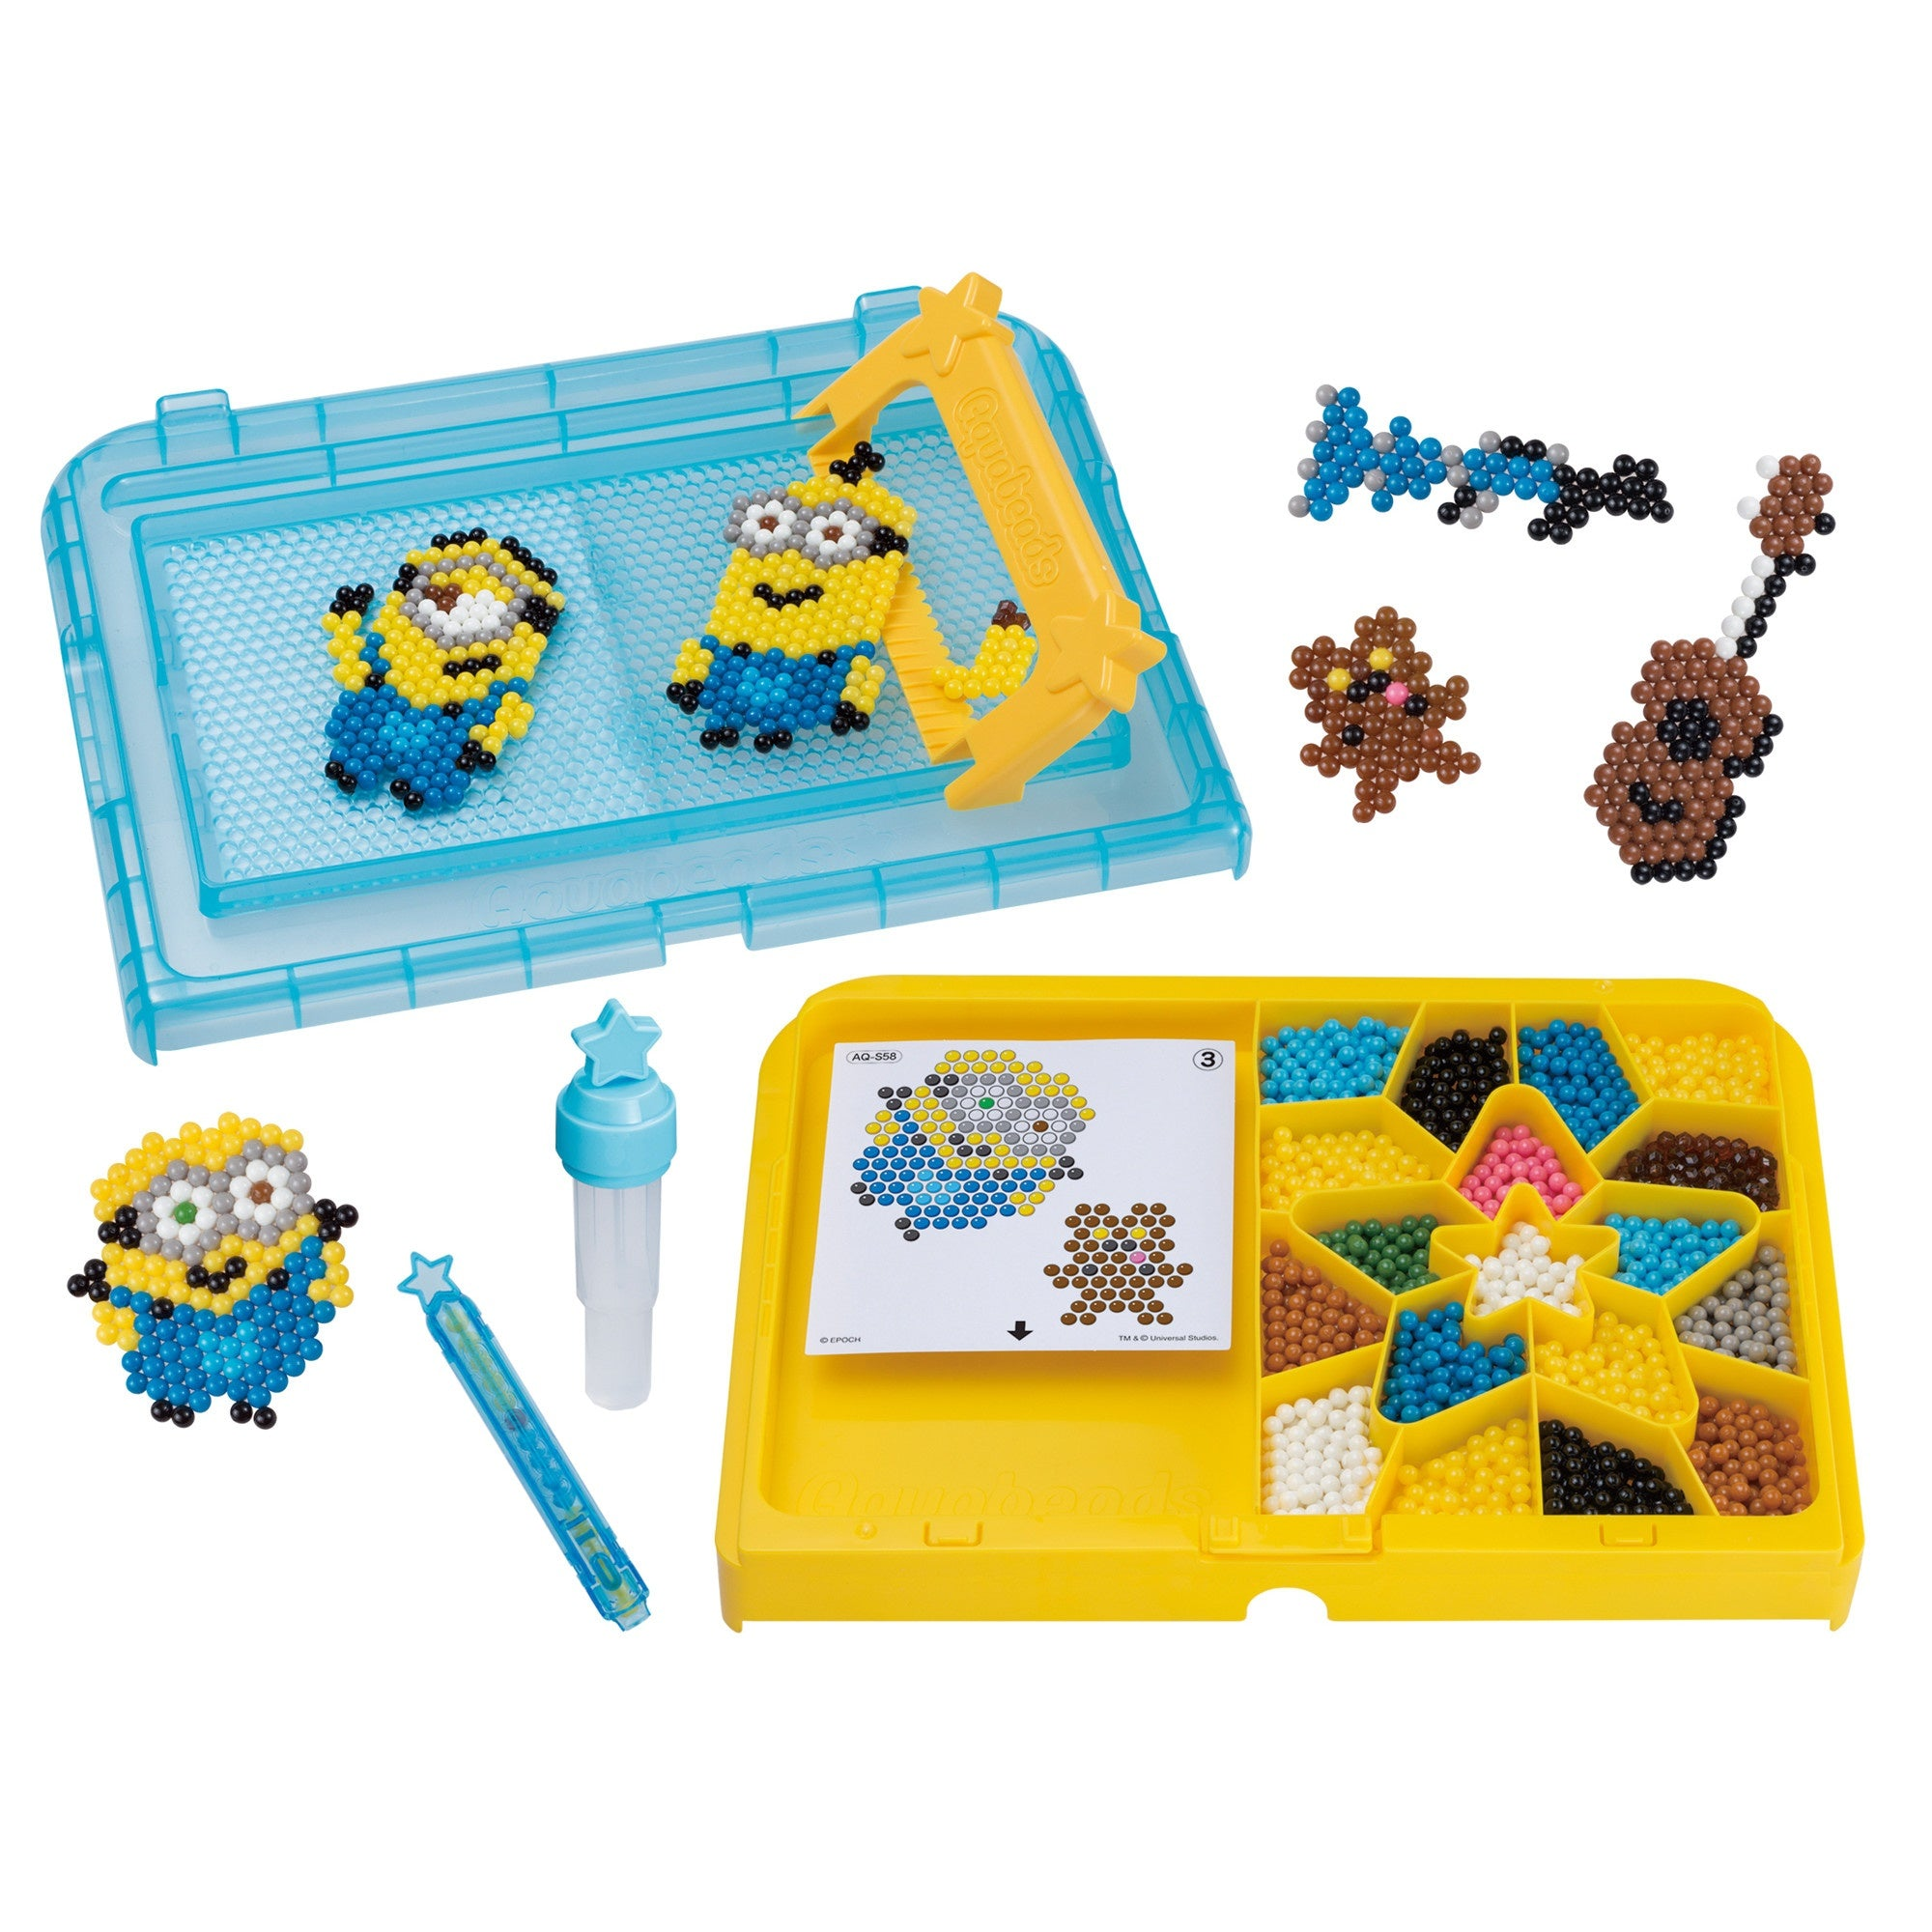 International Playthings - Aquabeads Minions Playset